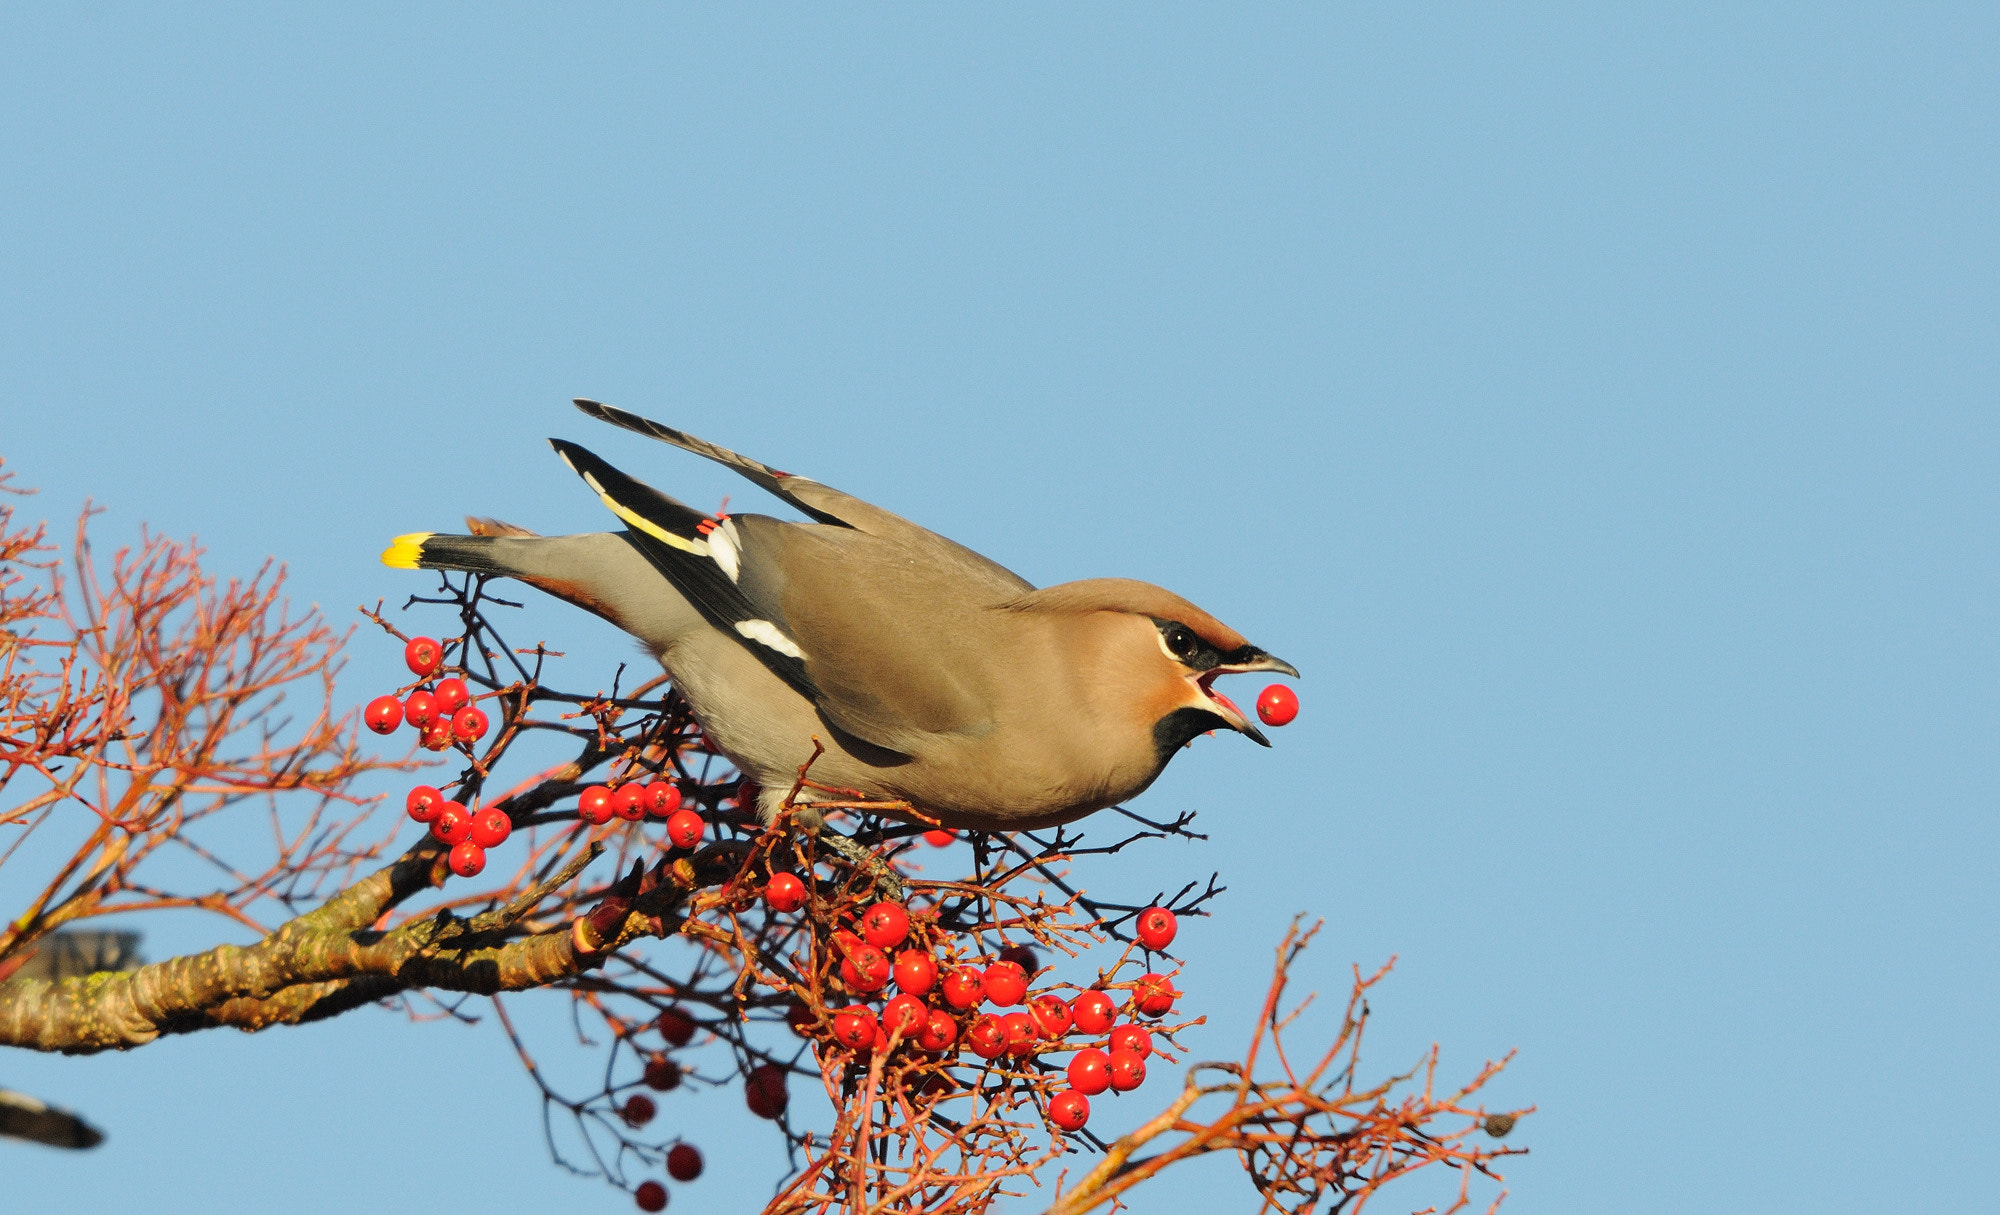 Photograph Waxwing by KeithK on 500px